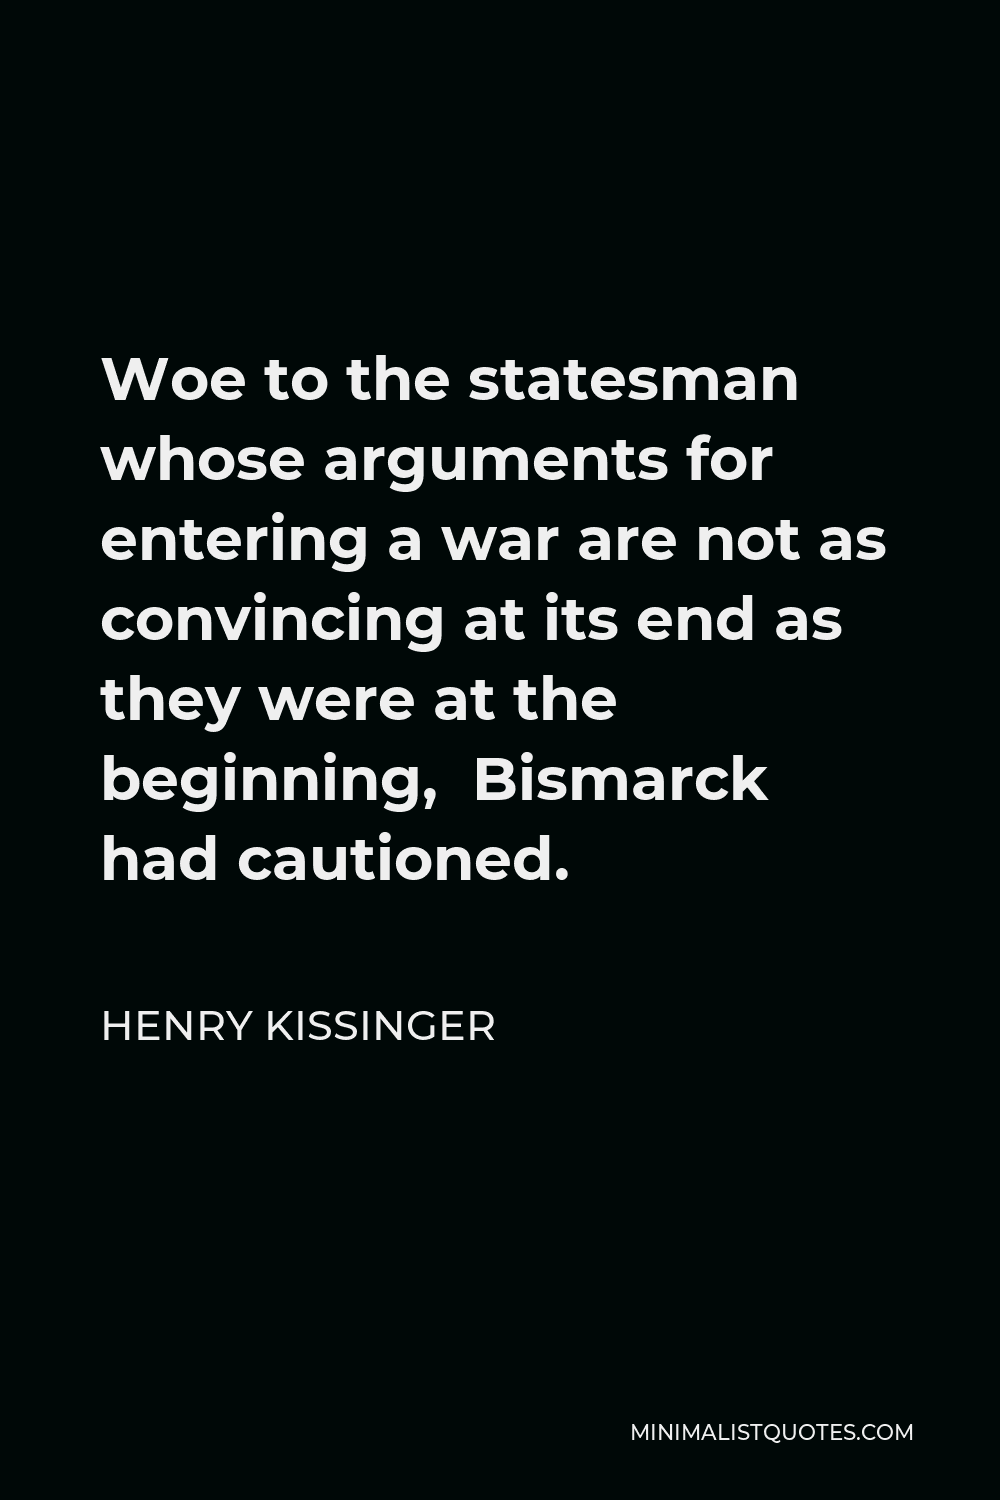 Henry Kissinger Quote - Woe to the statesman whose arguments for entering a war are not as convincing at its end as they were at the beginning, Bismarck had cautioned.